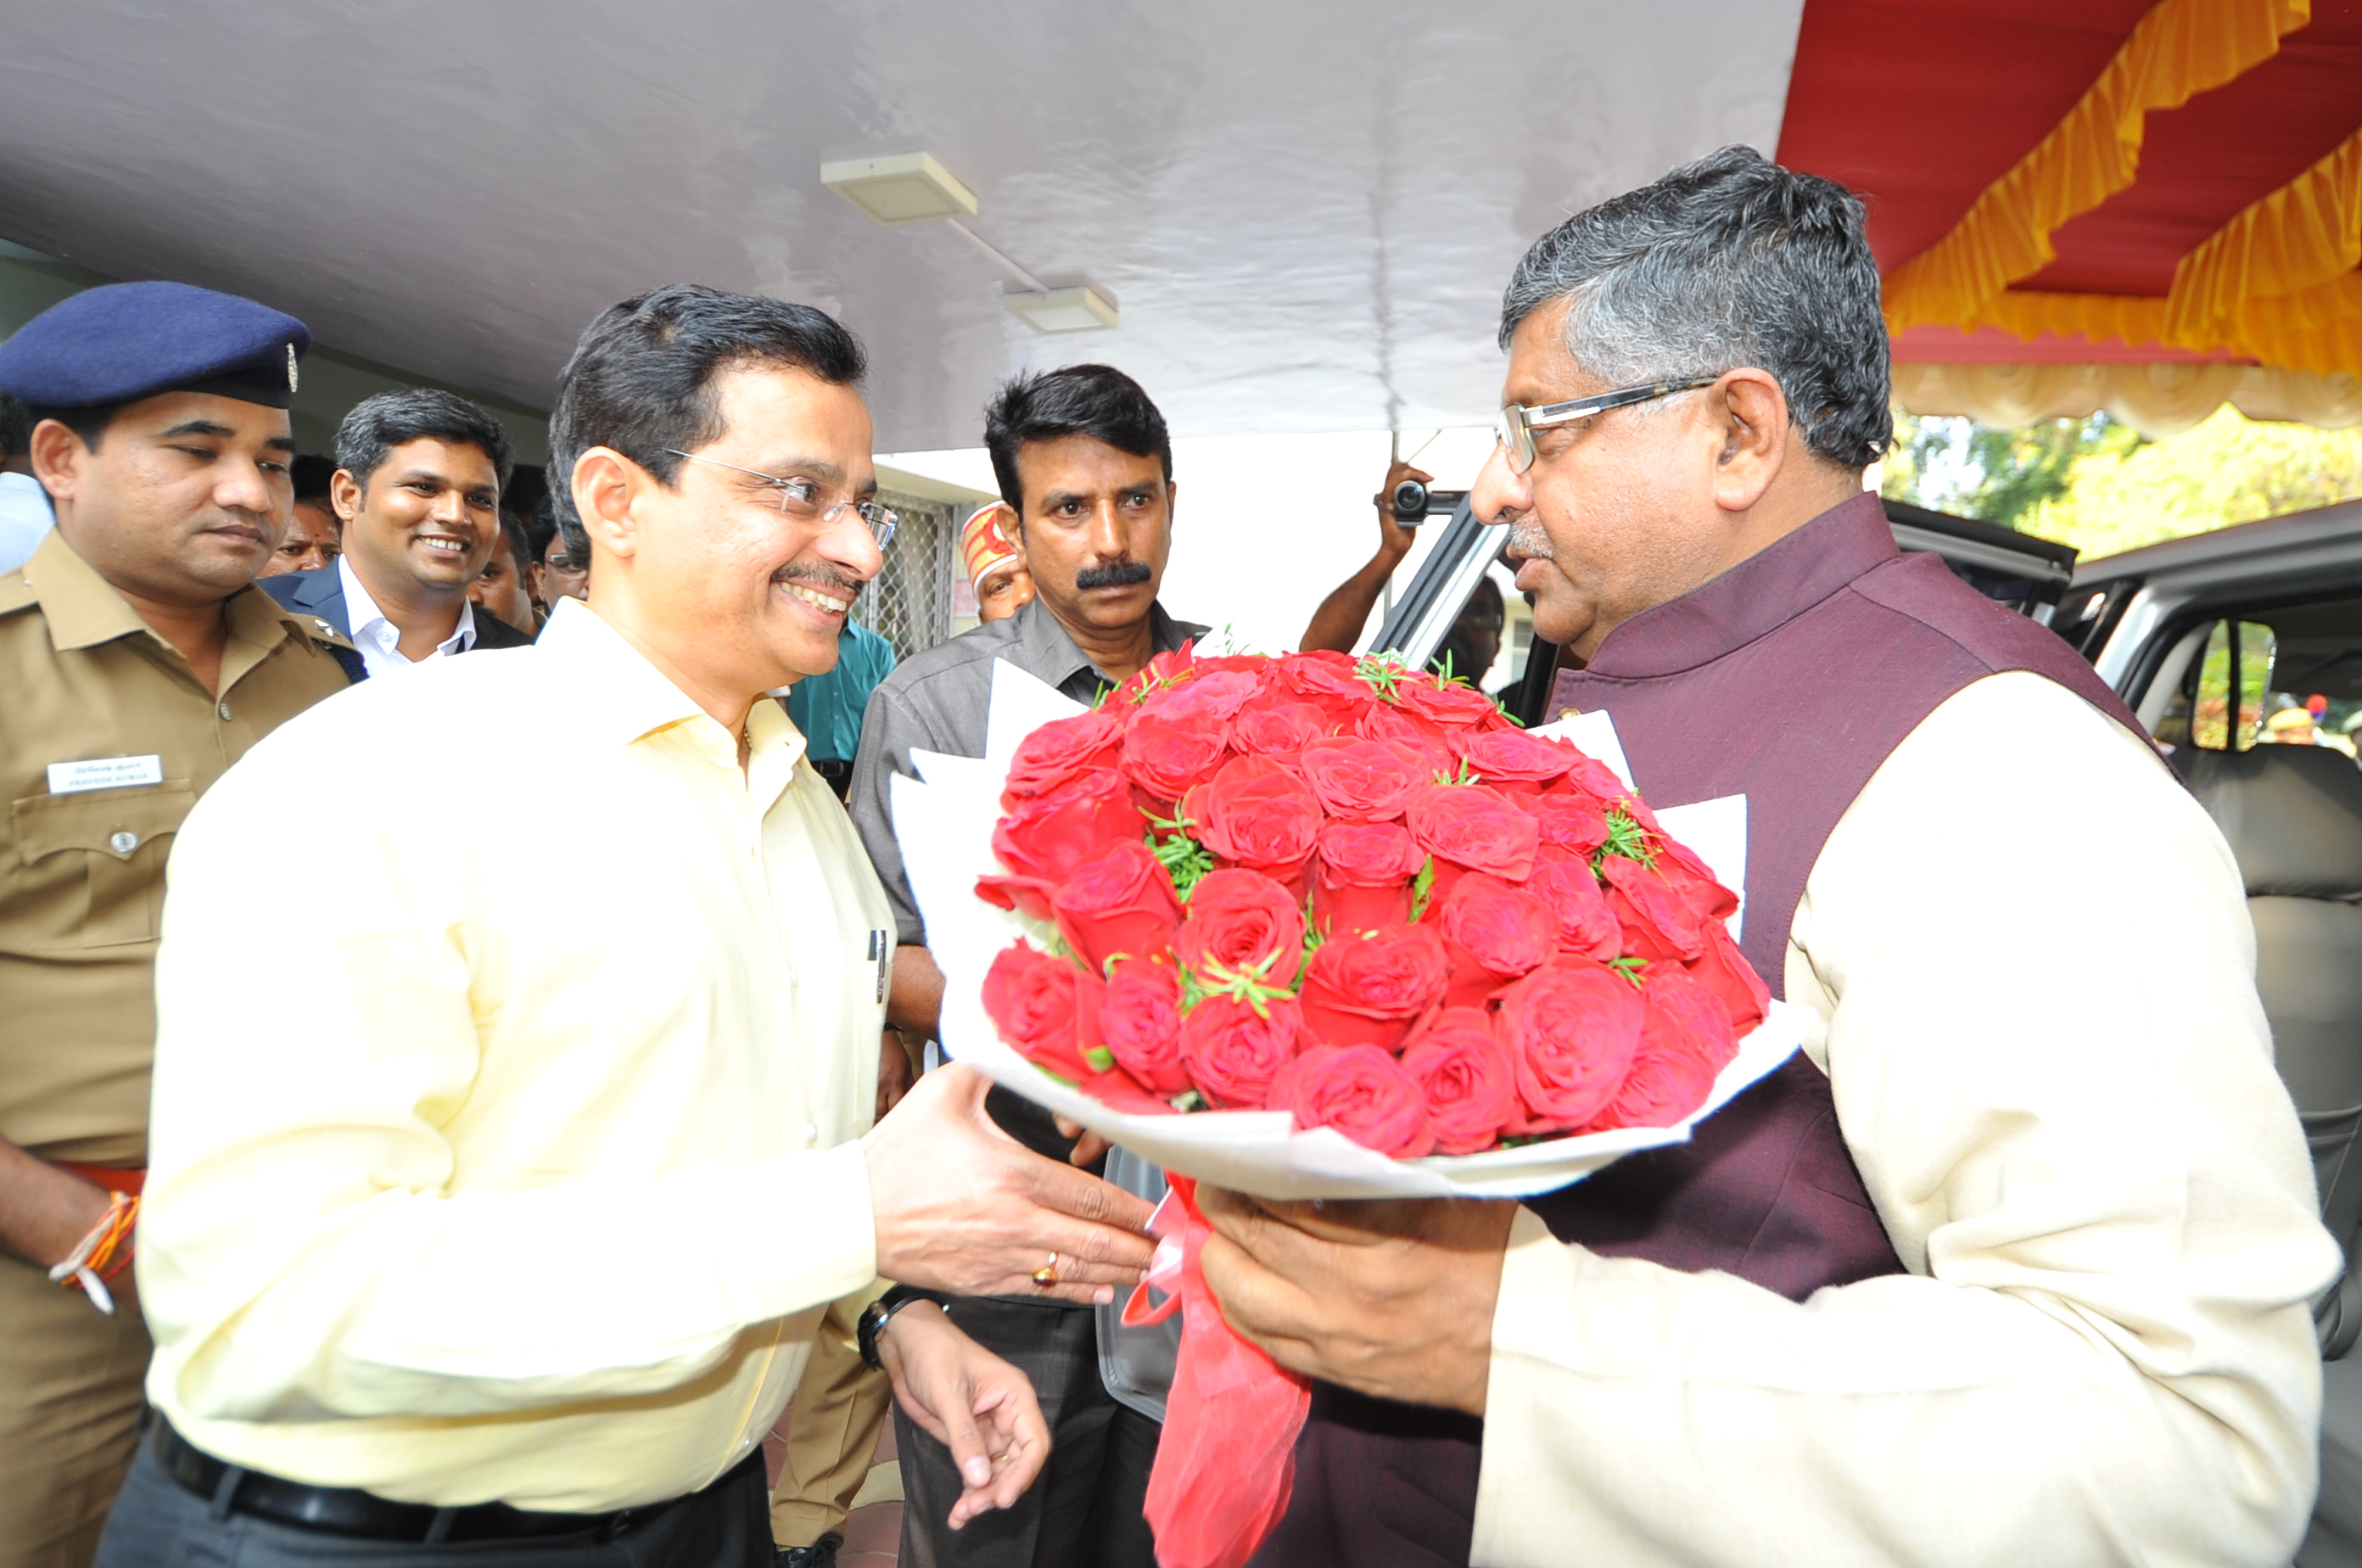 Honourable minister Shri Ravi Shankar Prasad Minister for Communications & Information Technology and Law & Justice Welcome by The District Collector